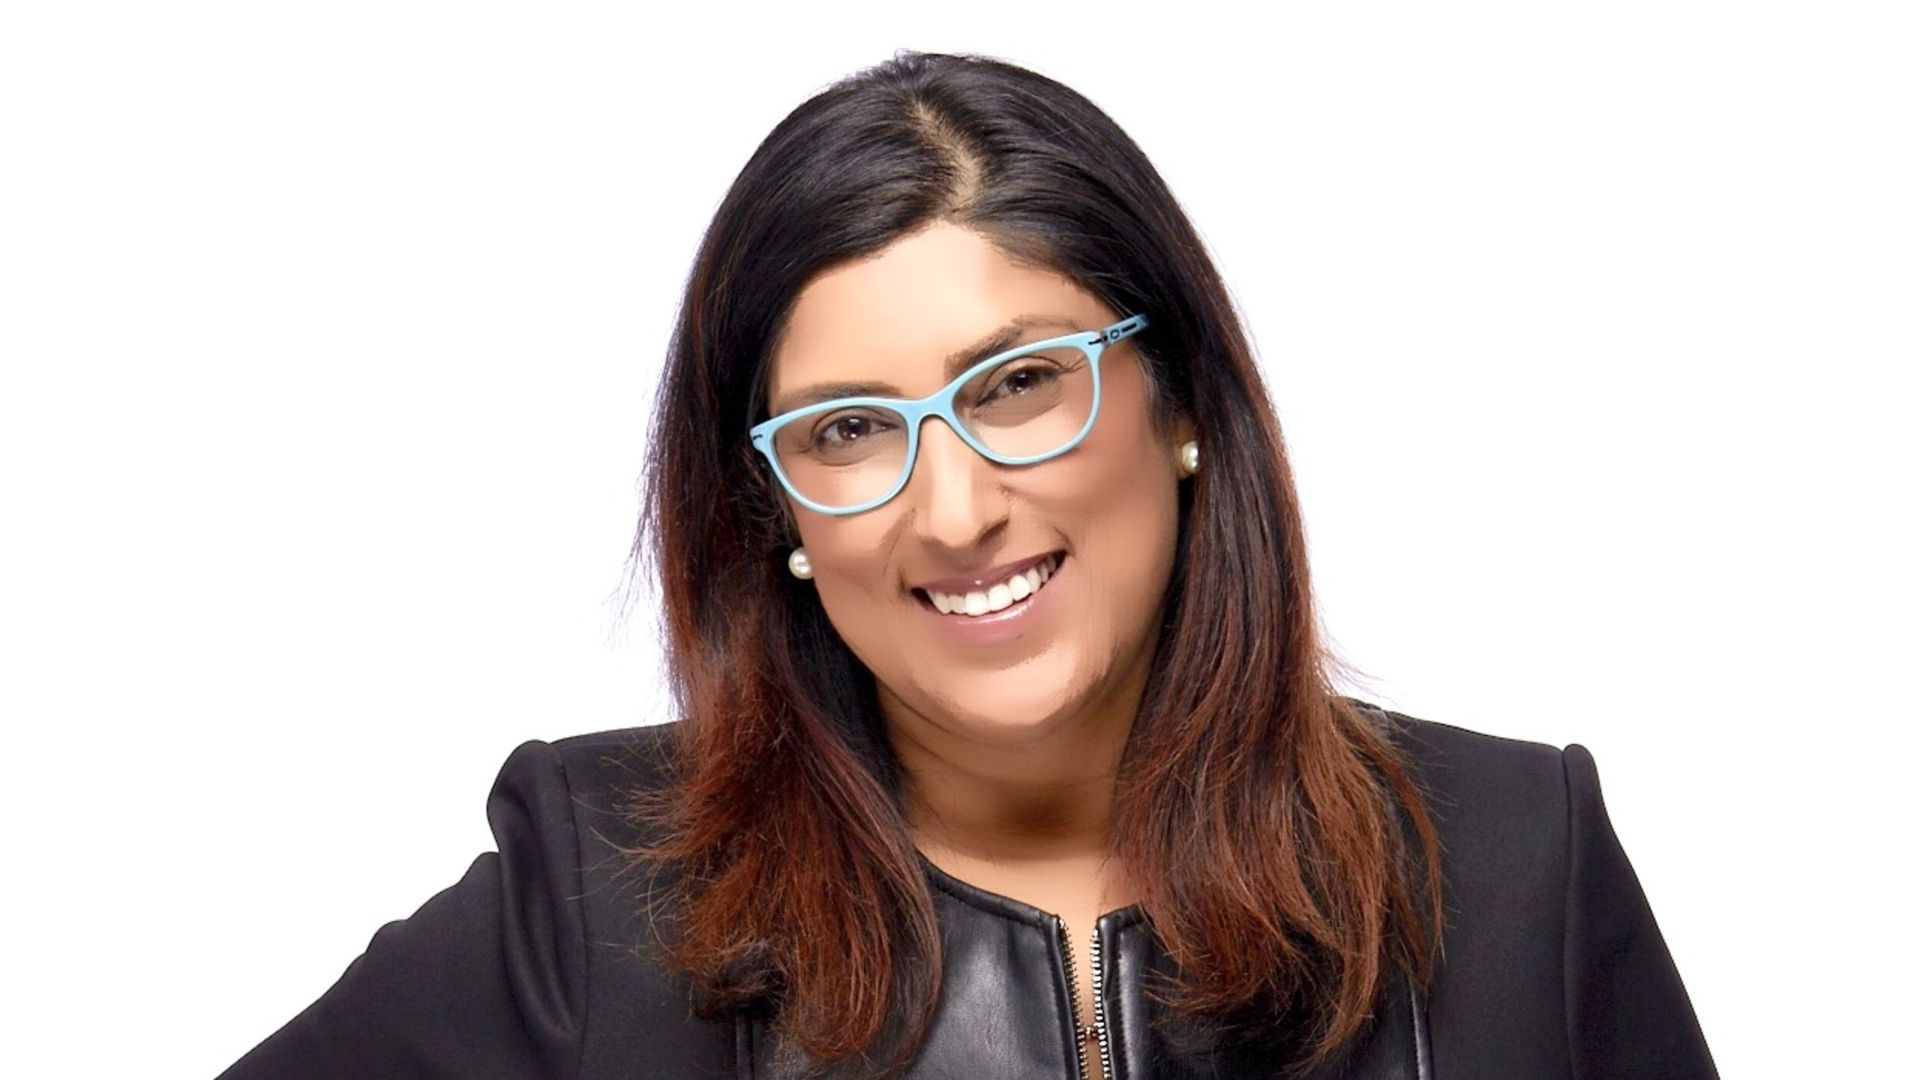 Navrina Singh is the founder and CEO of Credo AI, an AI Fund / Andrew Ng portfolio company.